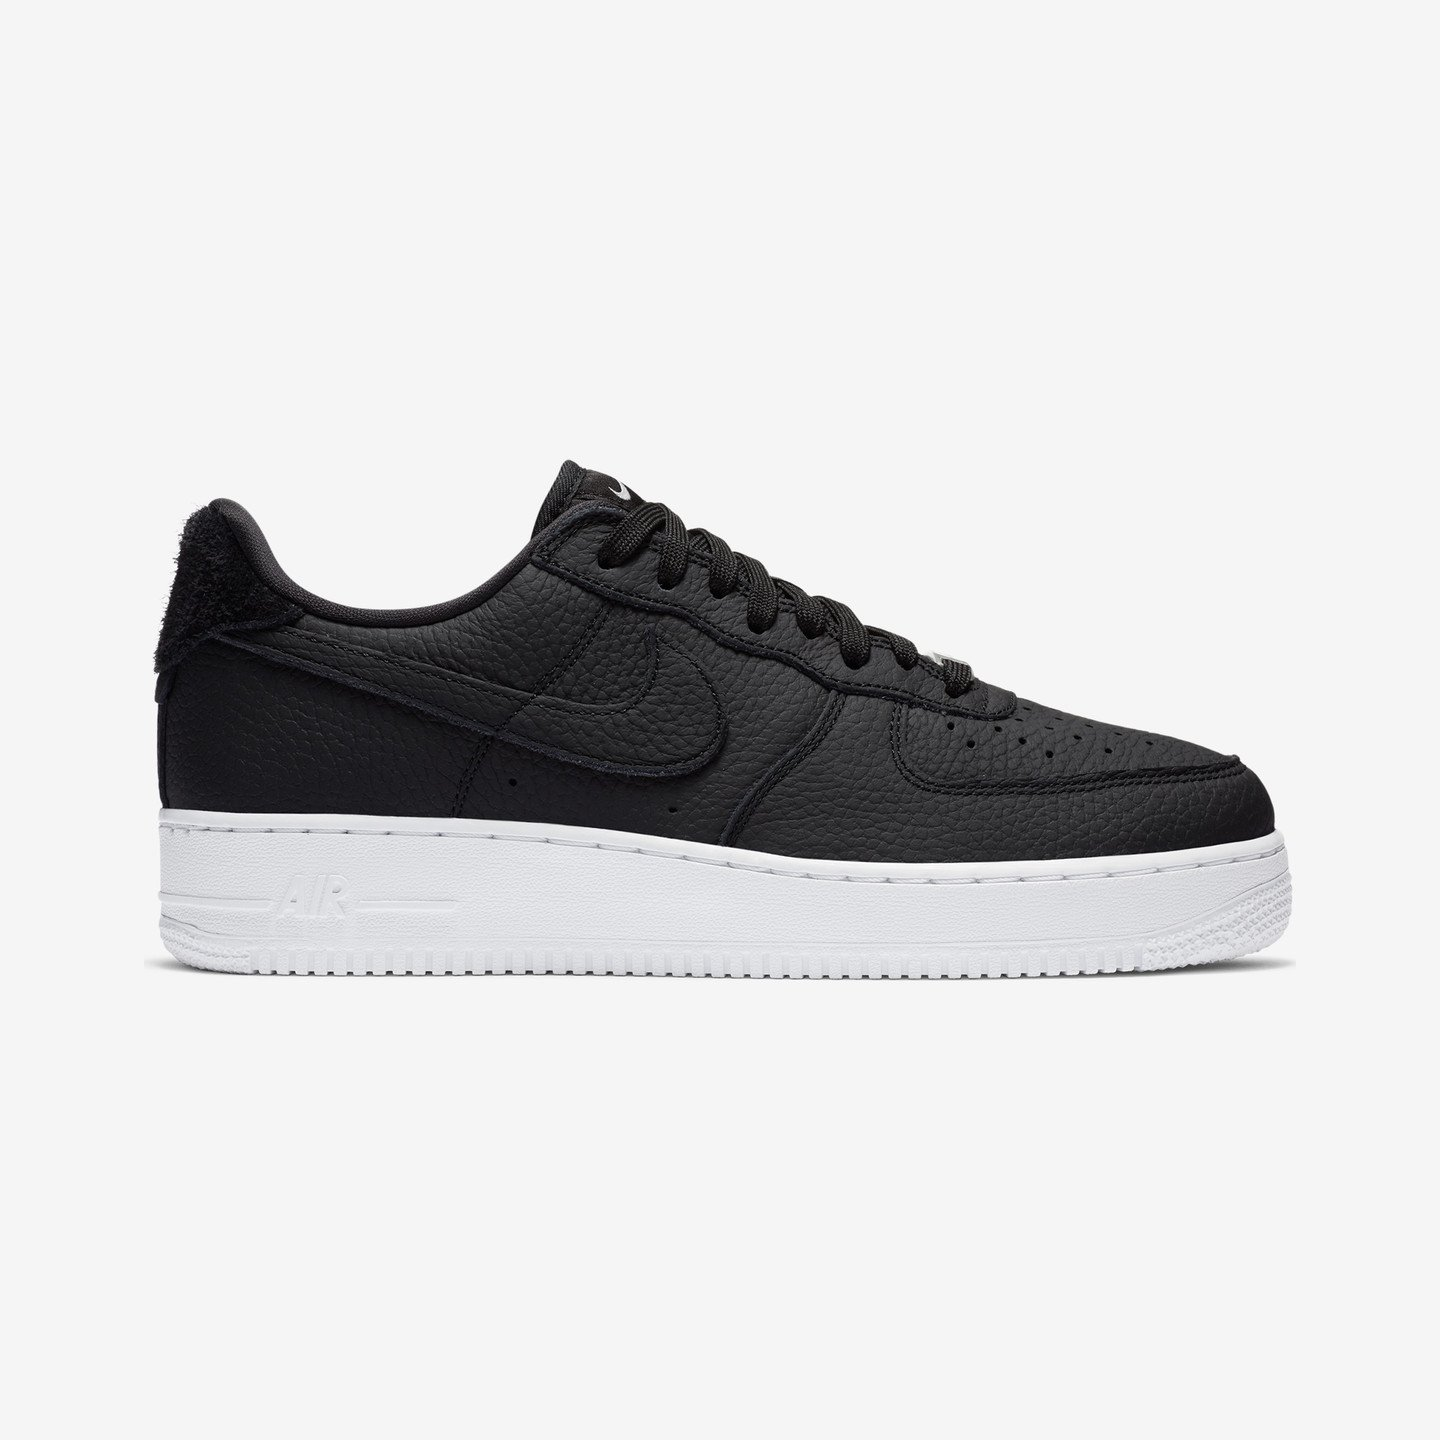 Nike Air Force 1 '07 Craft Black / White / Vast Grey CN2873-001